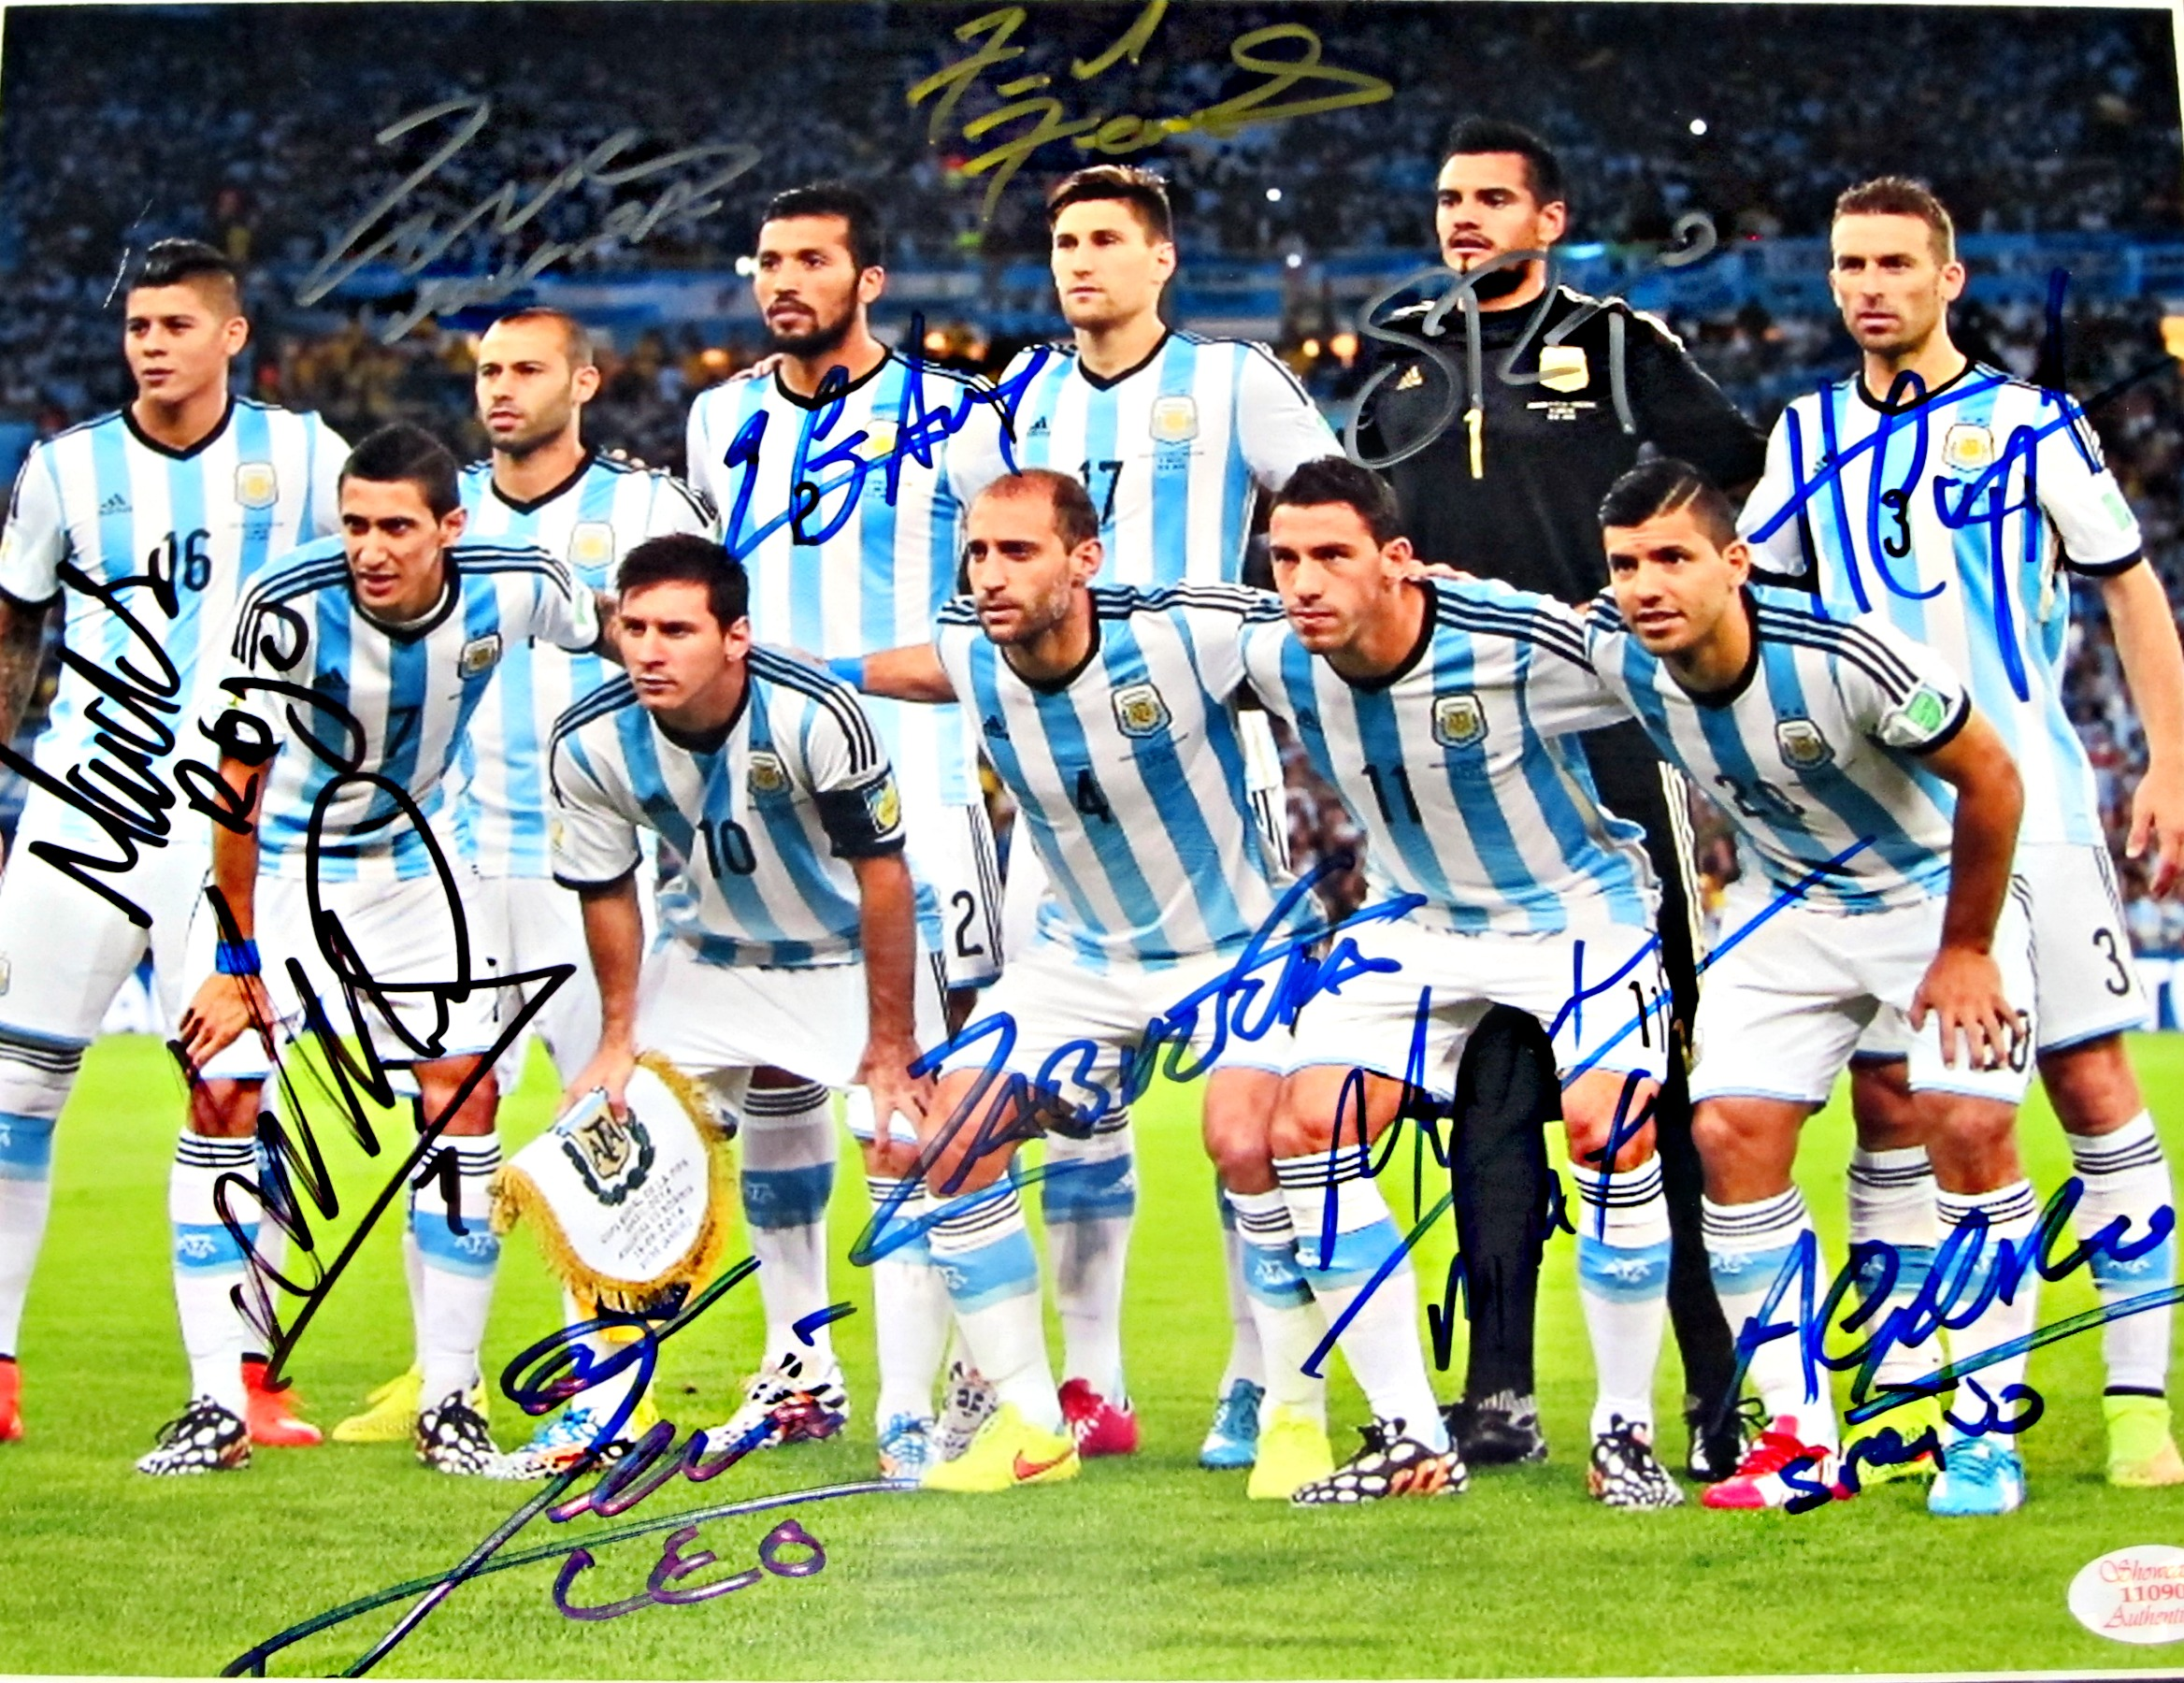 2014 argentina national team signed photo memorabilia center